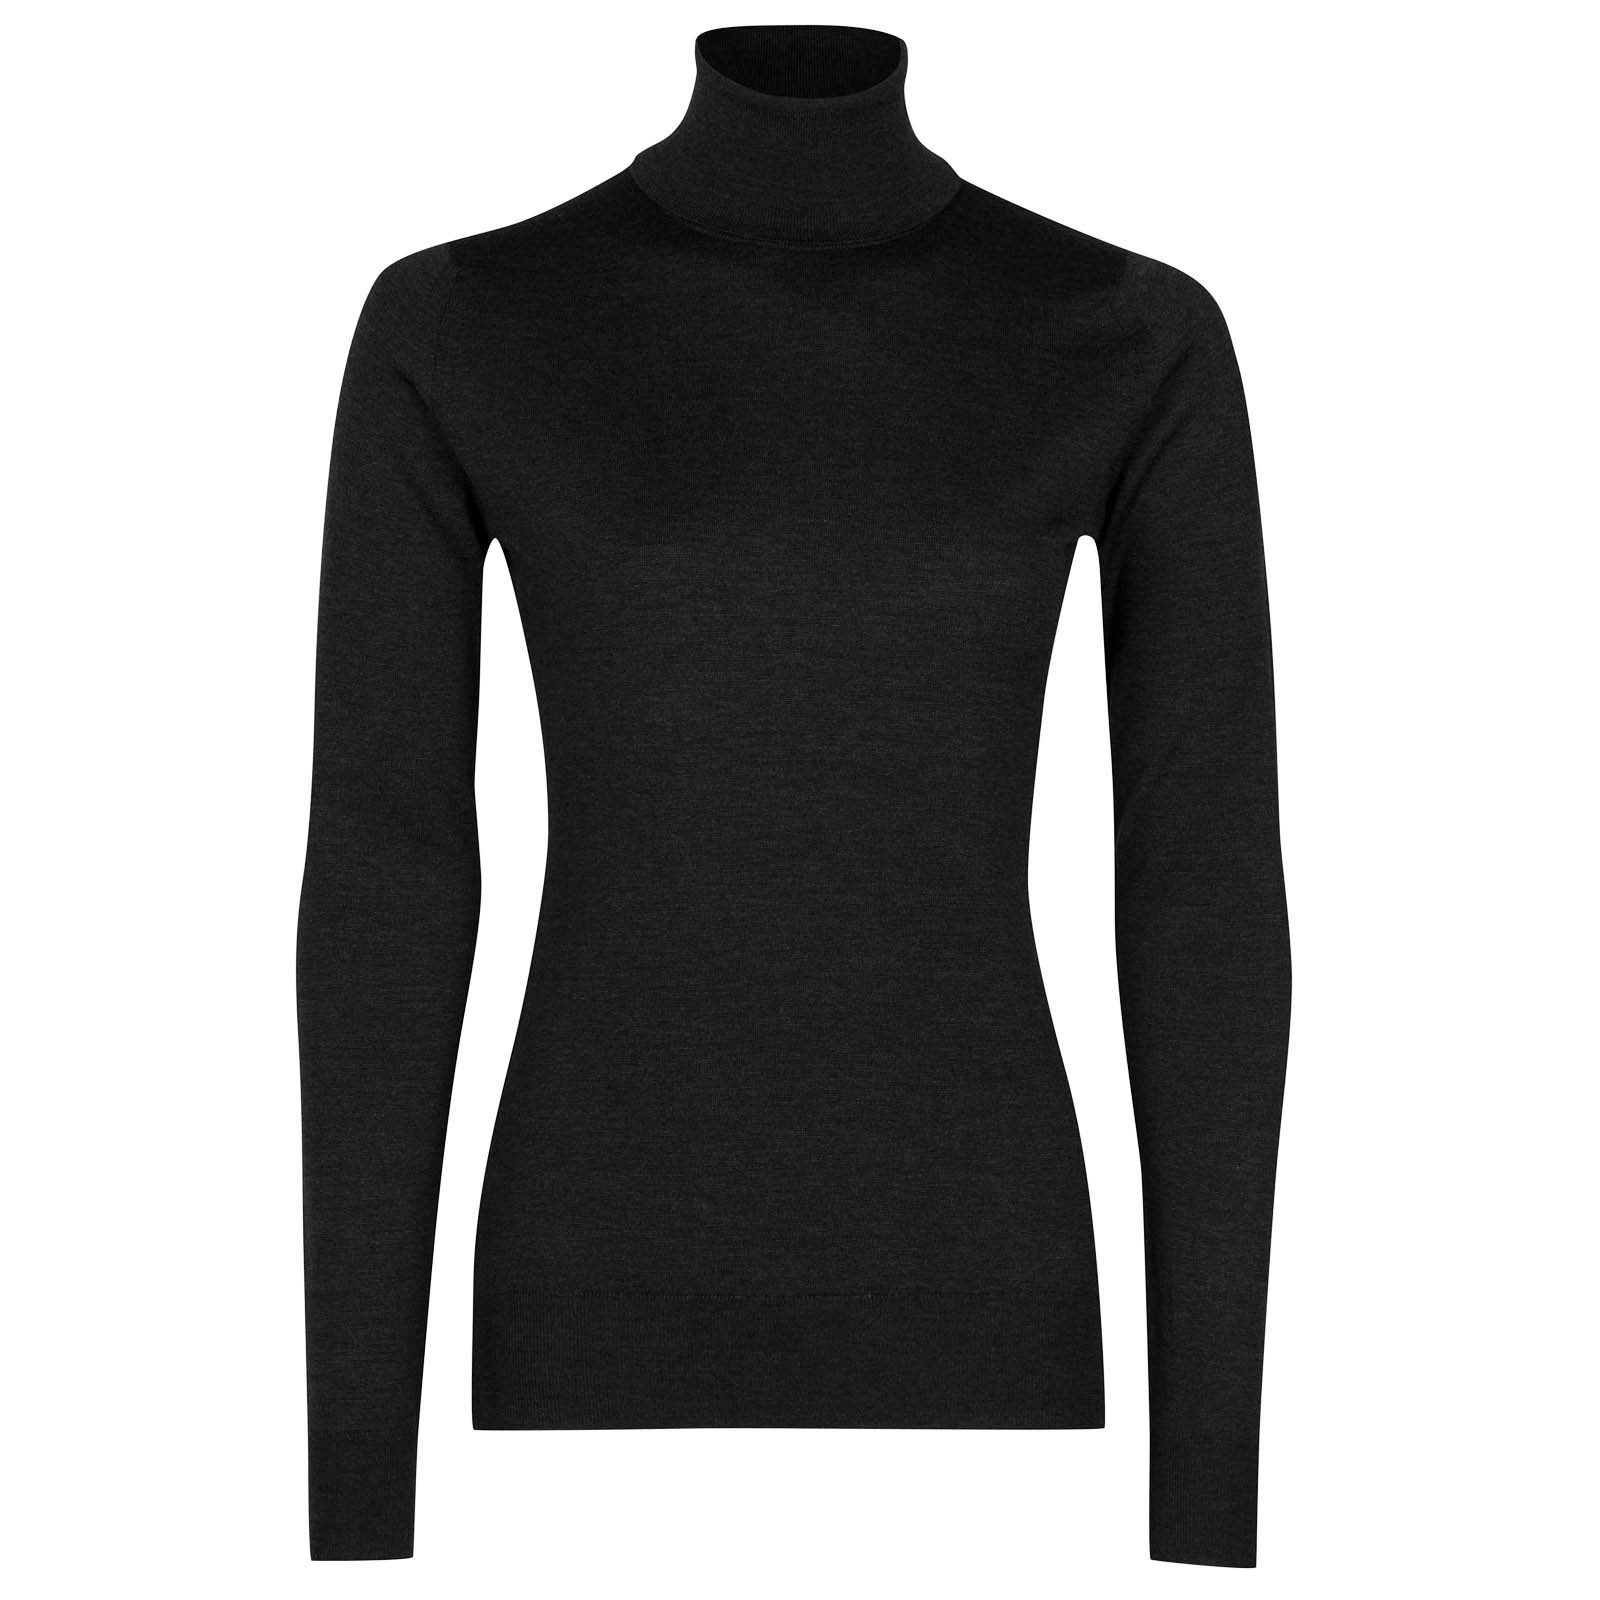 John Smedley Catkin Merino Wool Sweater in Hepburn Smoke-XL